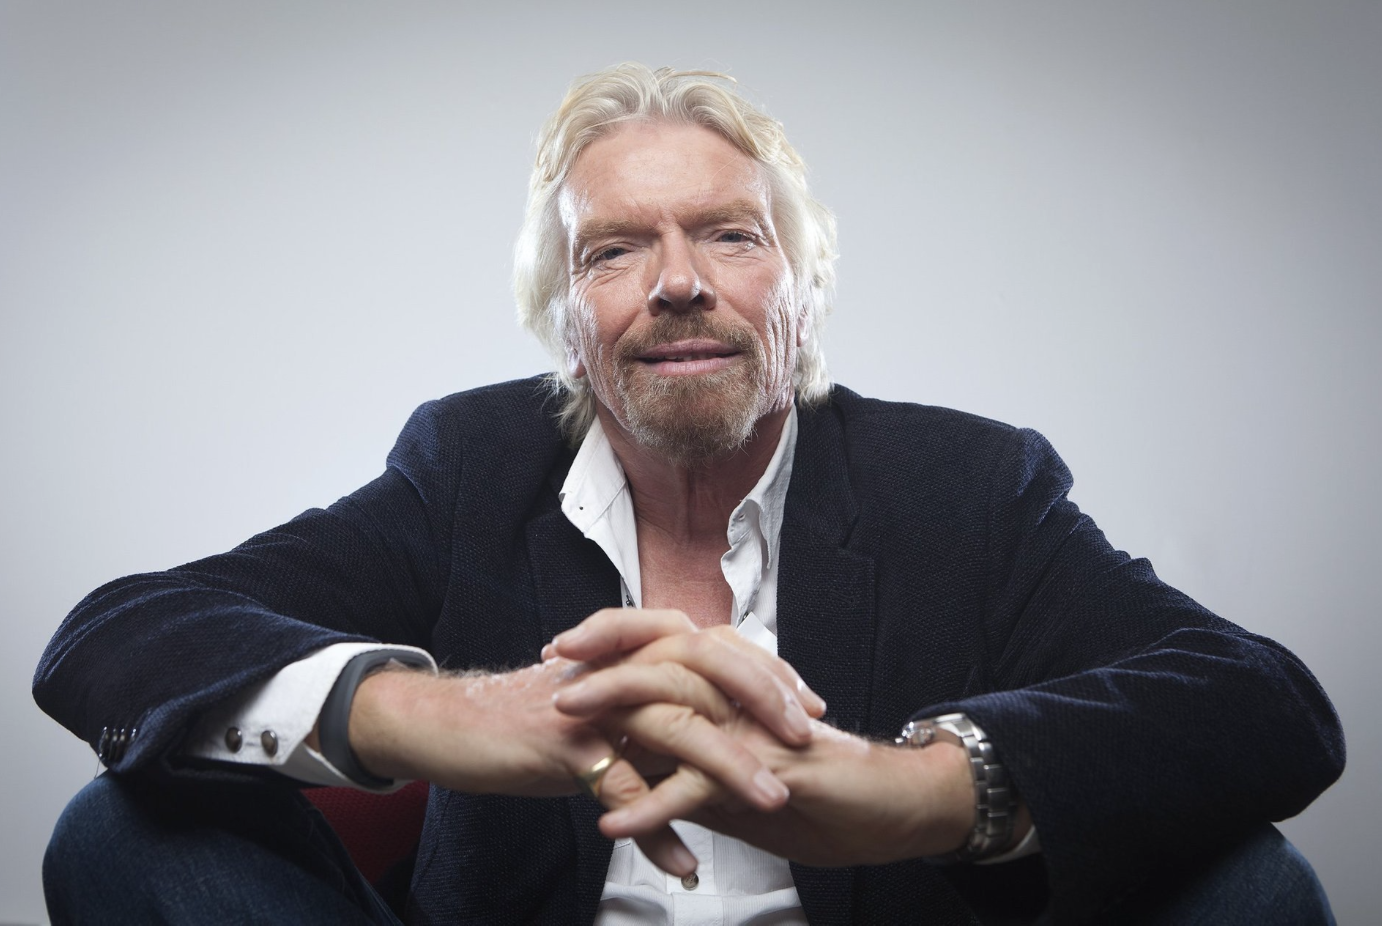 Richard Branson Believes Success is an Adventure